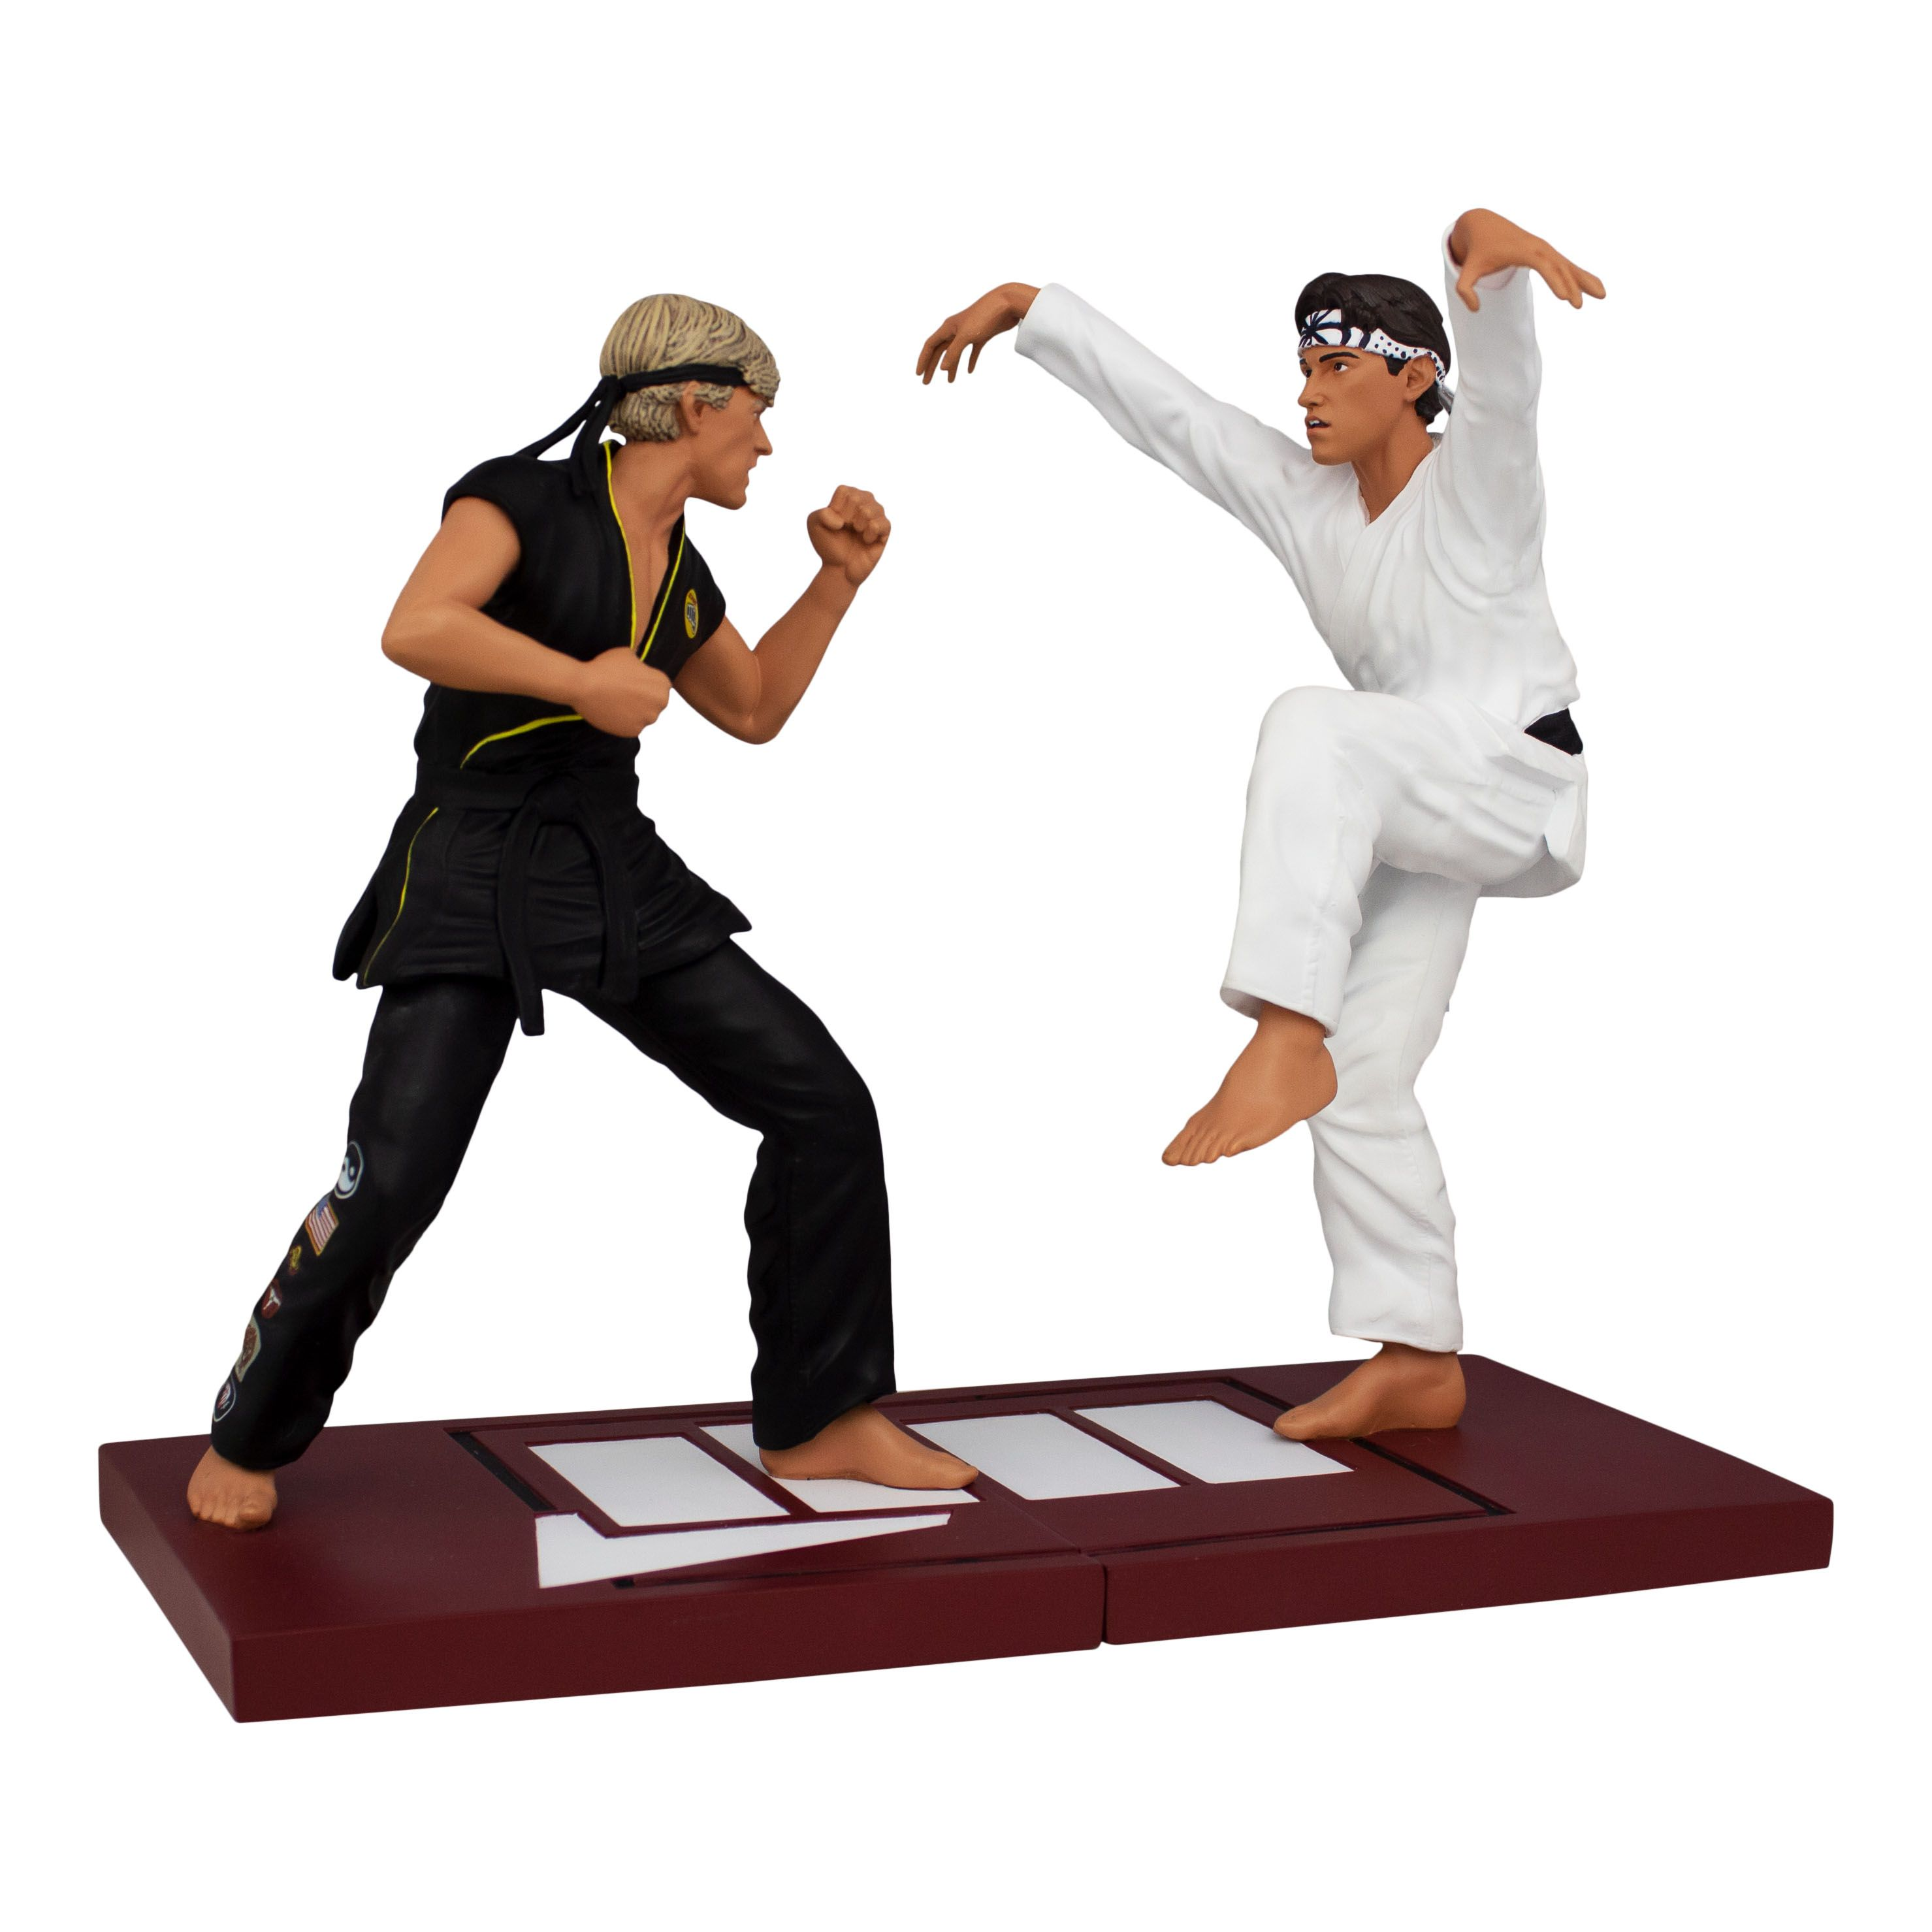 A New Statue Set Based On The Final Match From The Karate Kid Has Been Officially Revealed By Icon Heroes The Karate Kid To Karate Kid Karate Kid Movie Karate